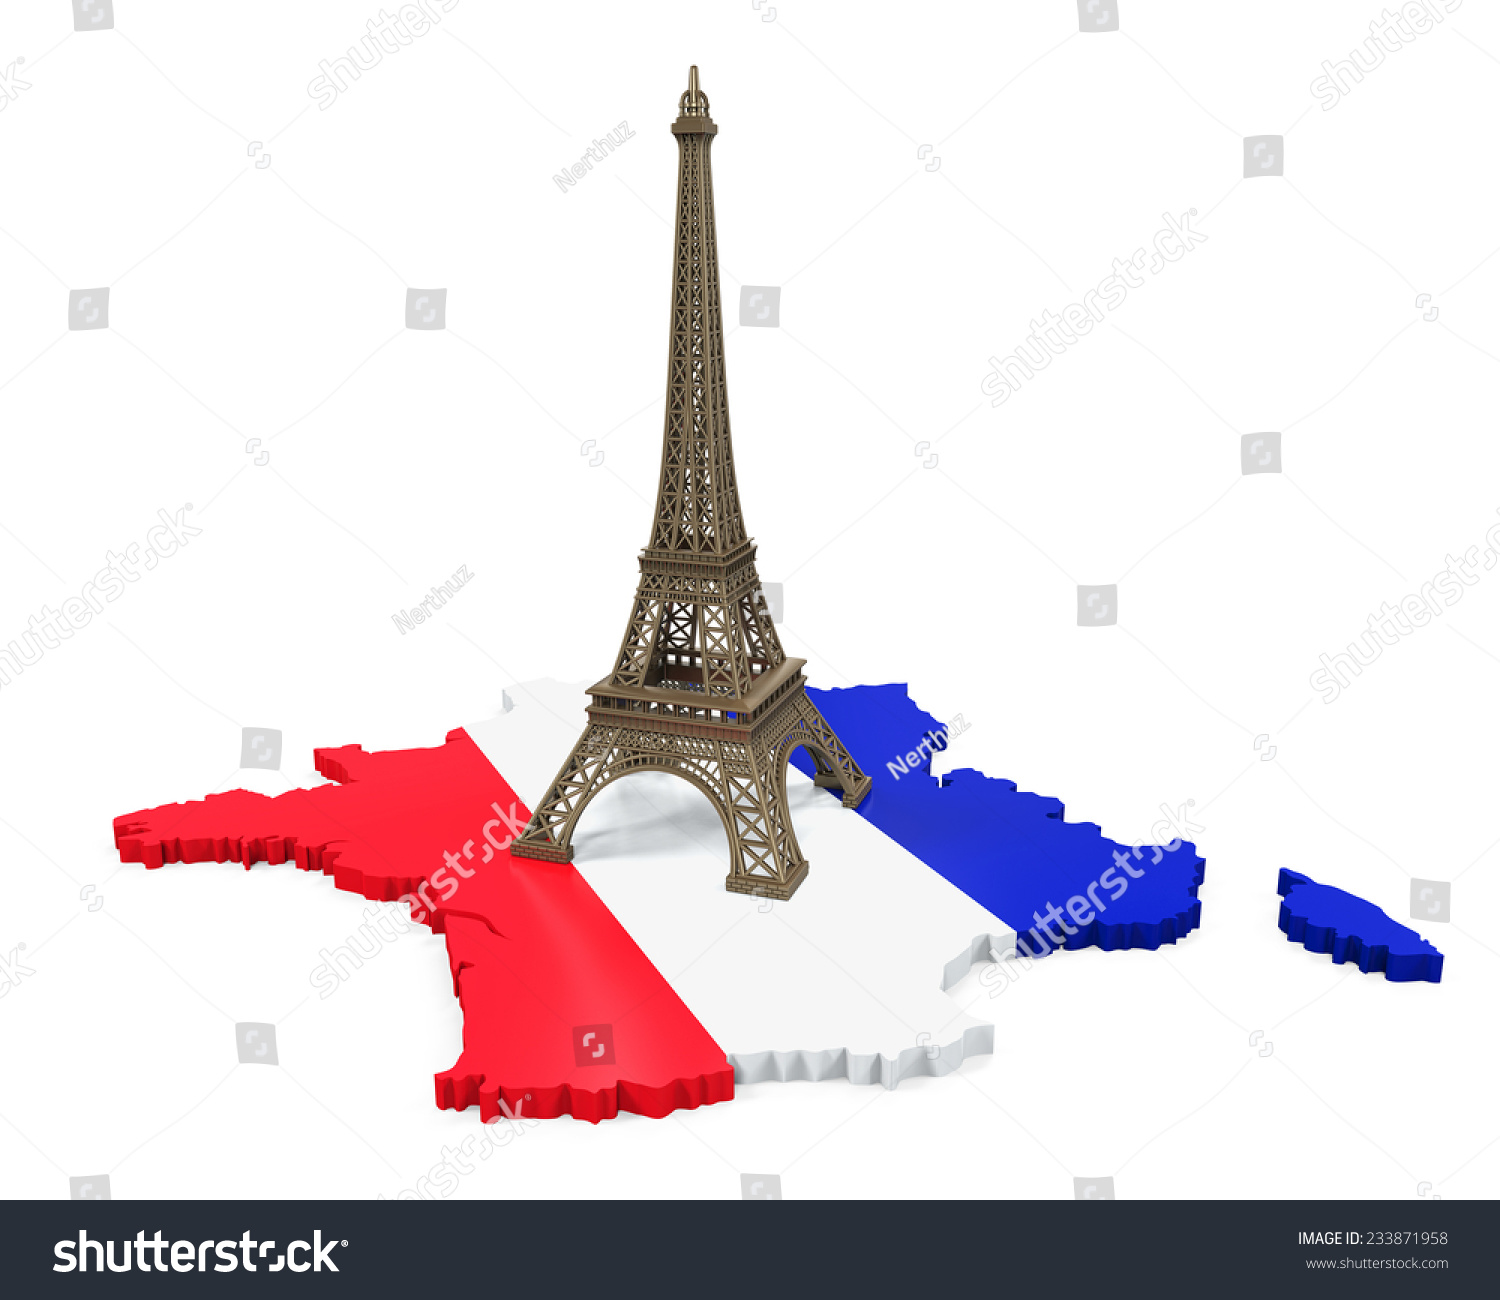 Map Of France Eiffel Tower.Royalty Free Stock Illustration Of Map France Eiffel Tower Stock